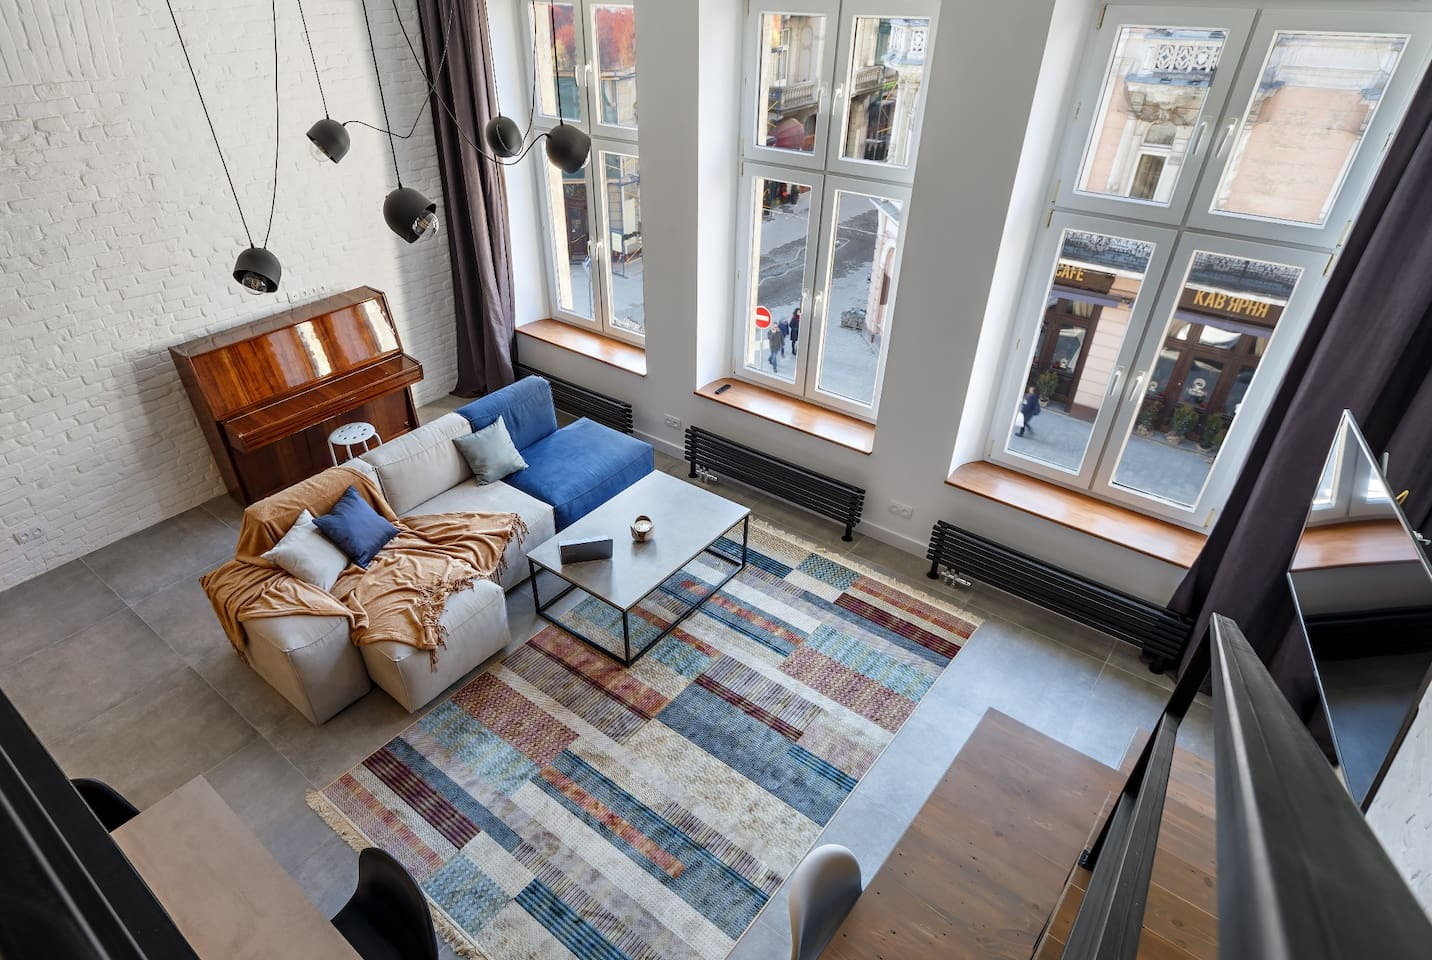 The view from the loft is two fold: the outside scene through the three tall windows and the spacious interior below.